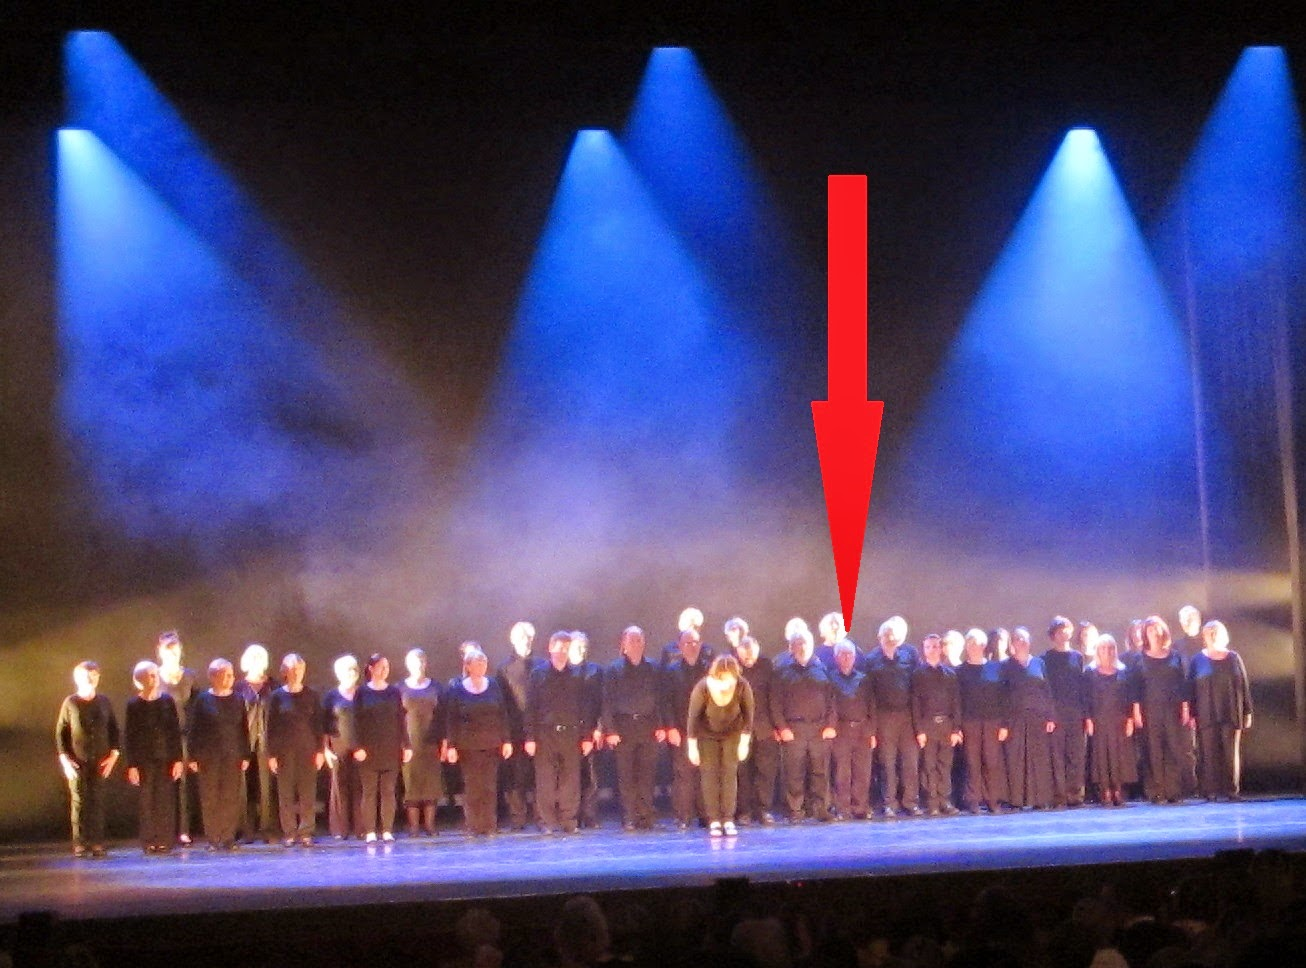 southampton choral society on stage at the mayflower